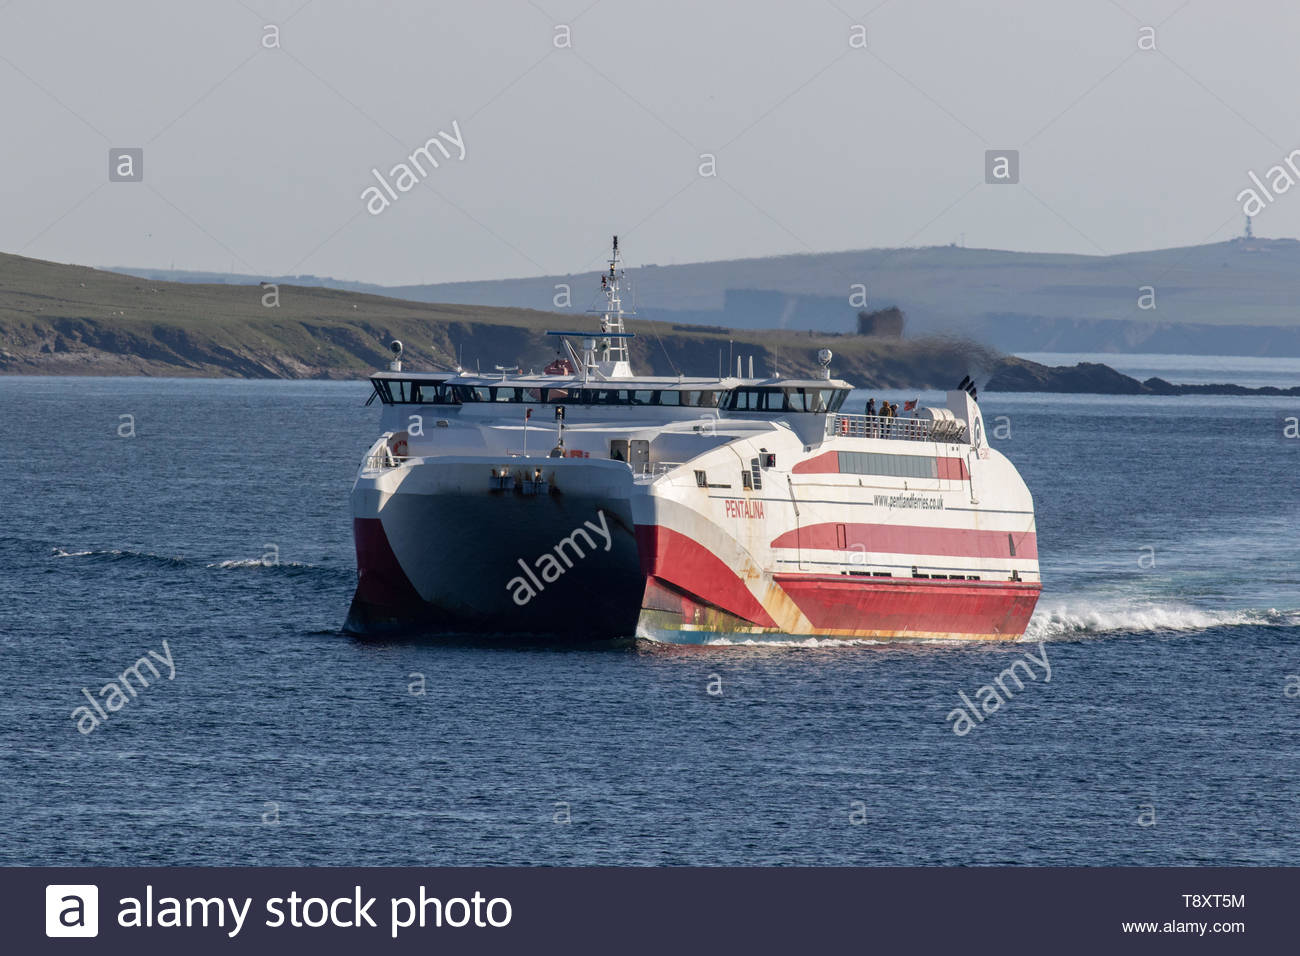 MV Pentalina of Pentland Ferries passing the island of Stroma in the Pentland Firth, North Scotland - Stock Image